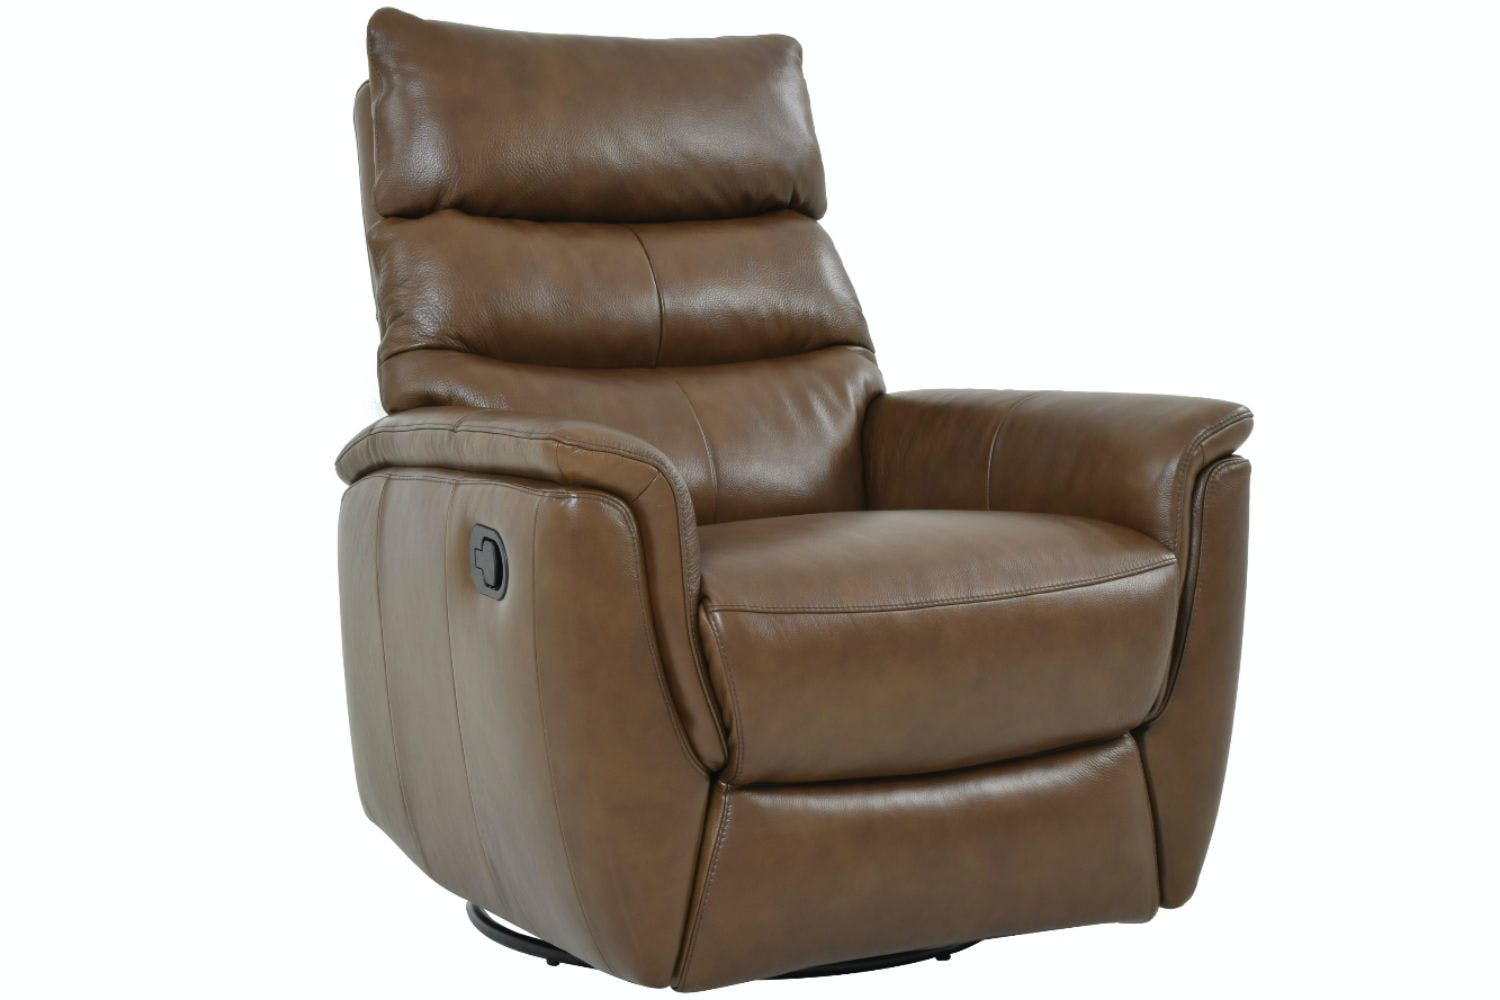 holders sofa picture oscar recliner drink p brown leather chair armchair cinema of gaming w